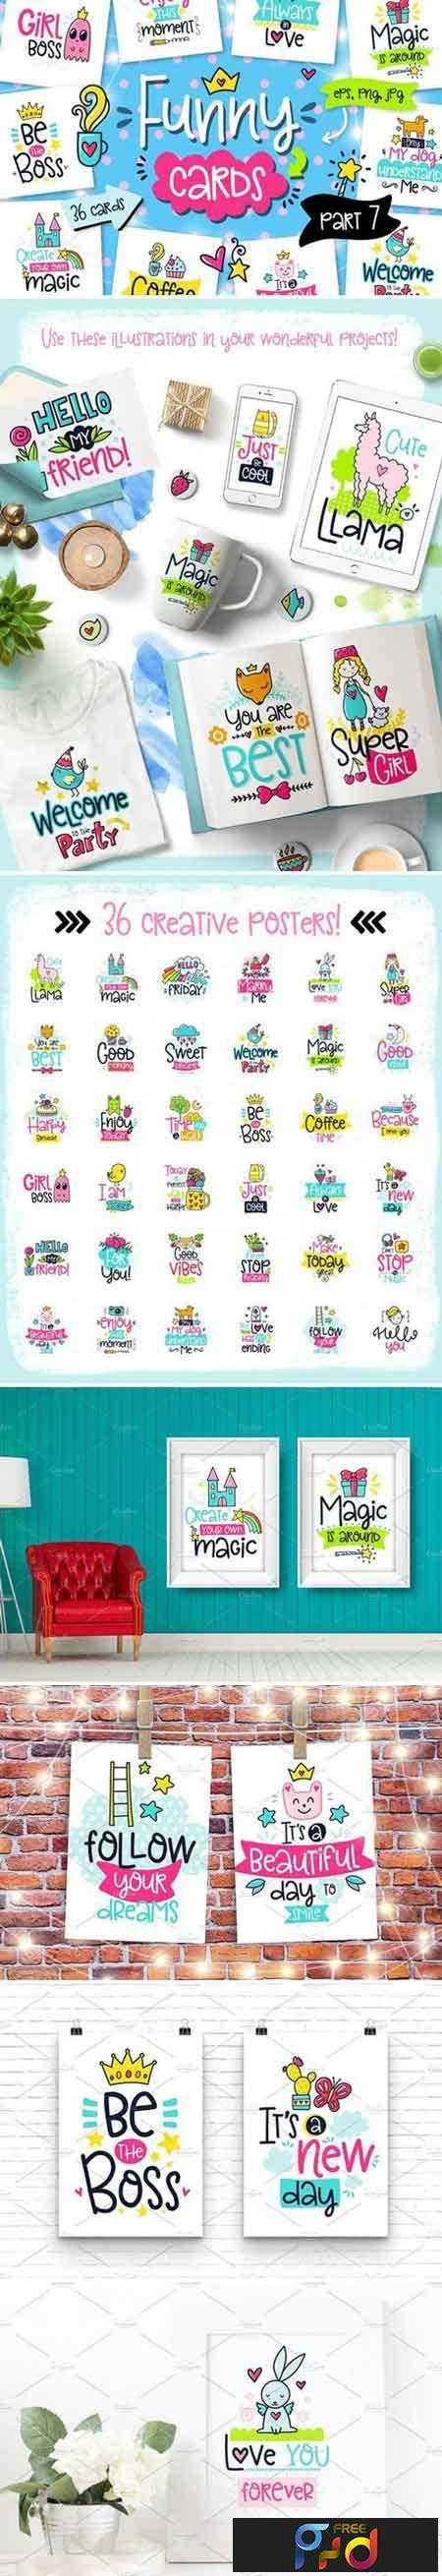 1707254 36 Funny Color Cards with Quote 1941112 1